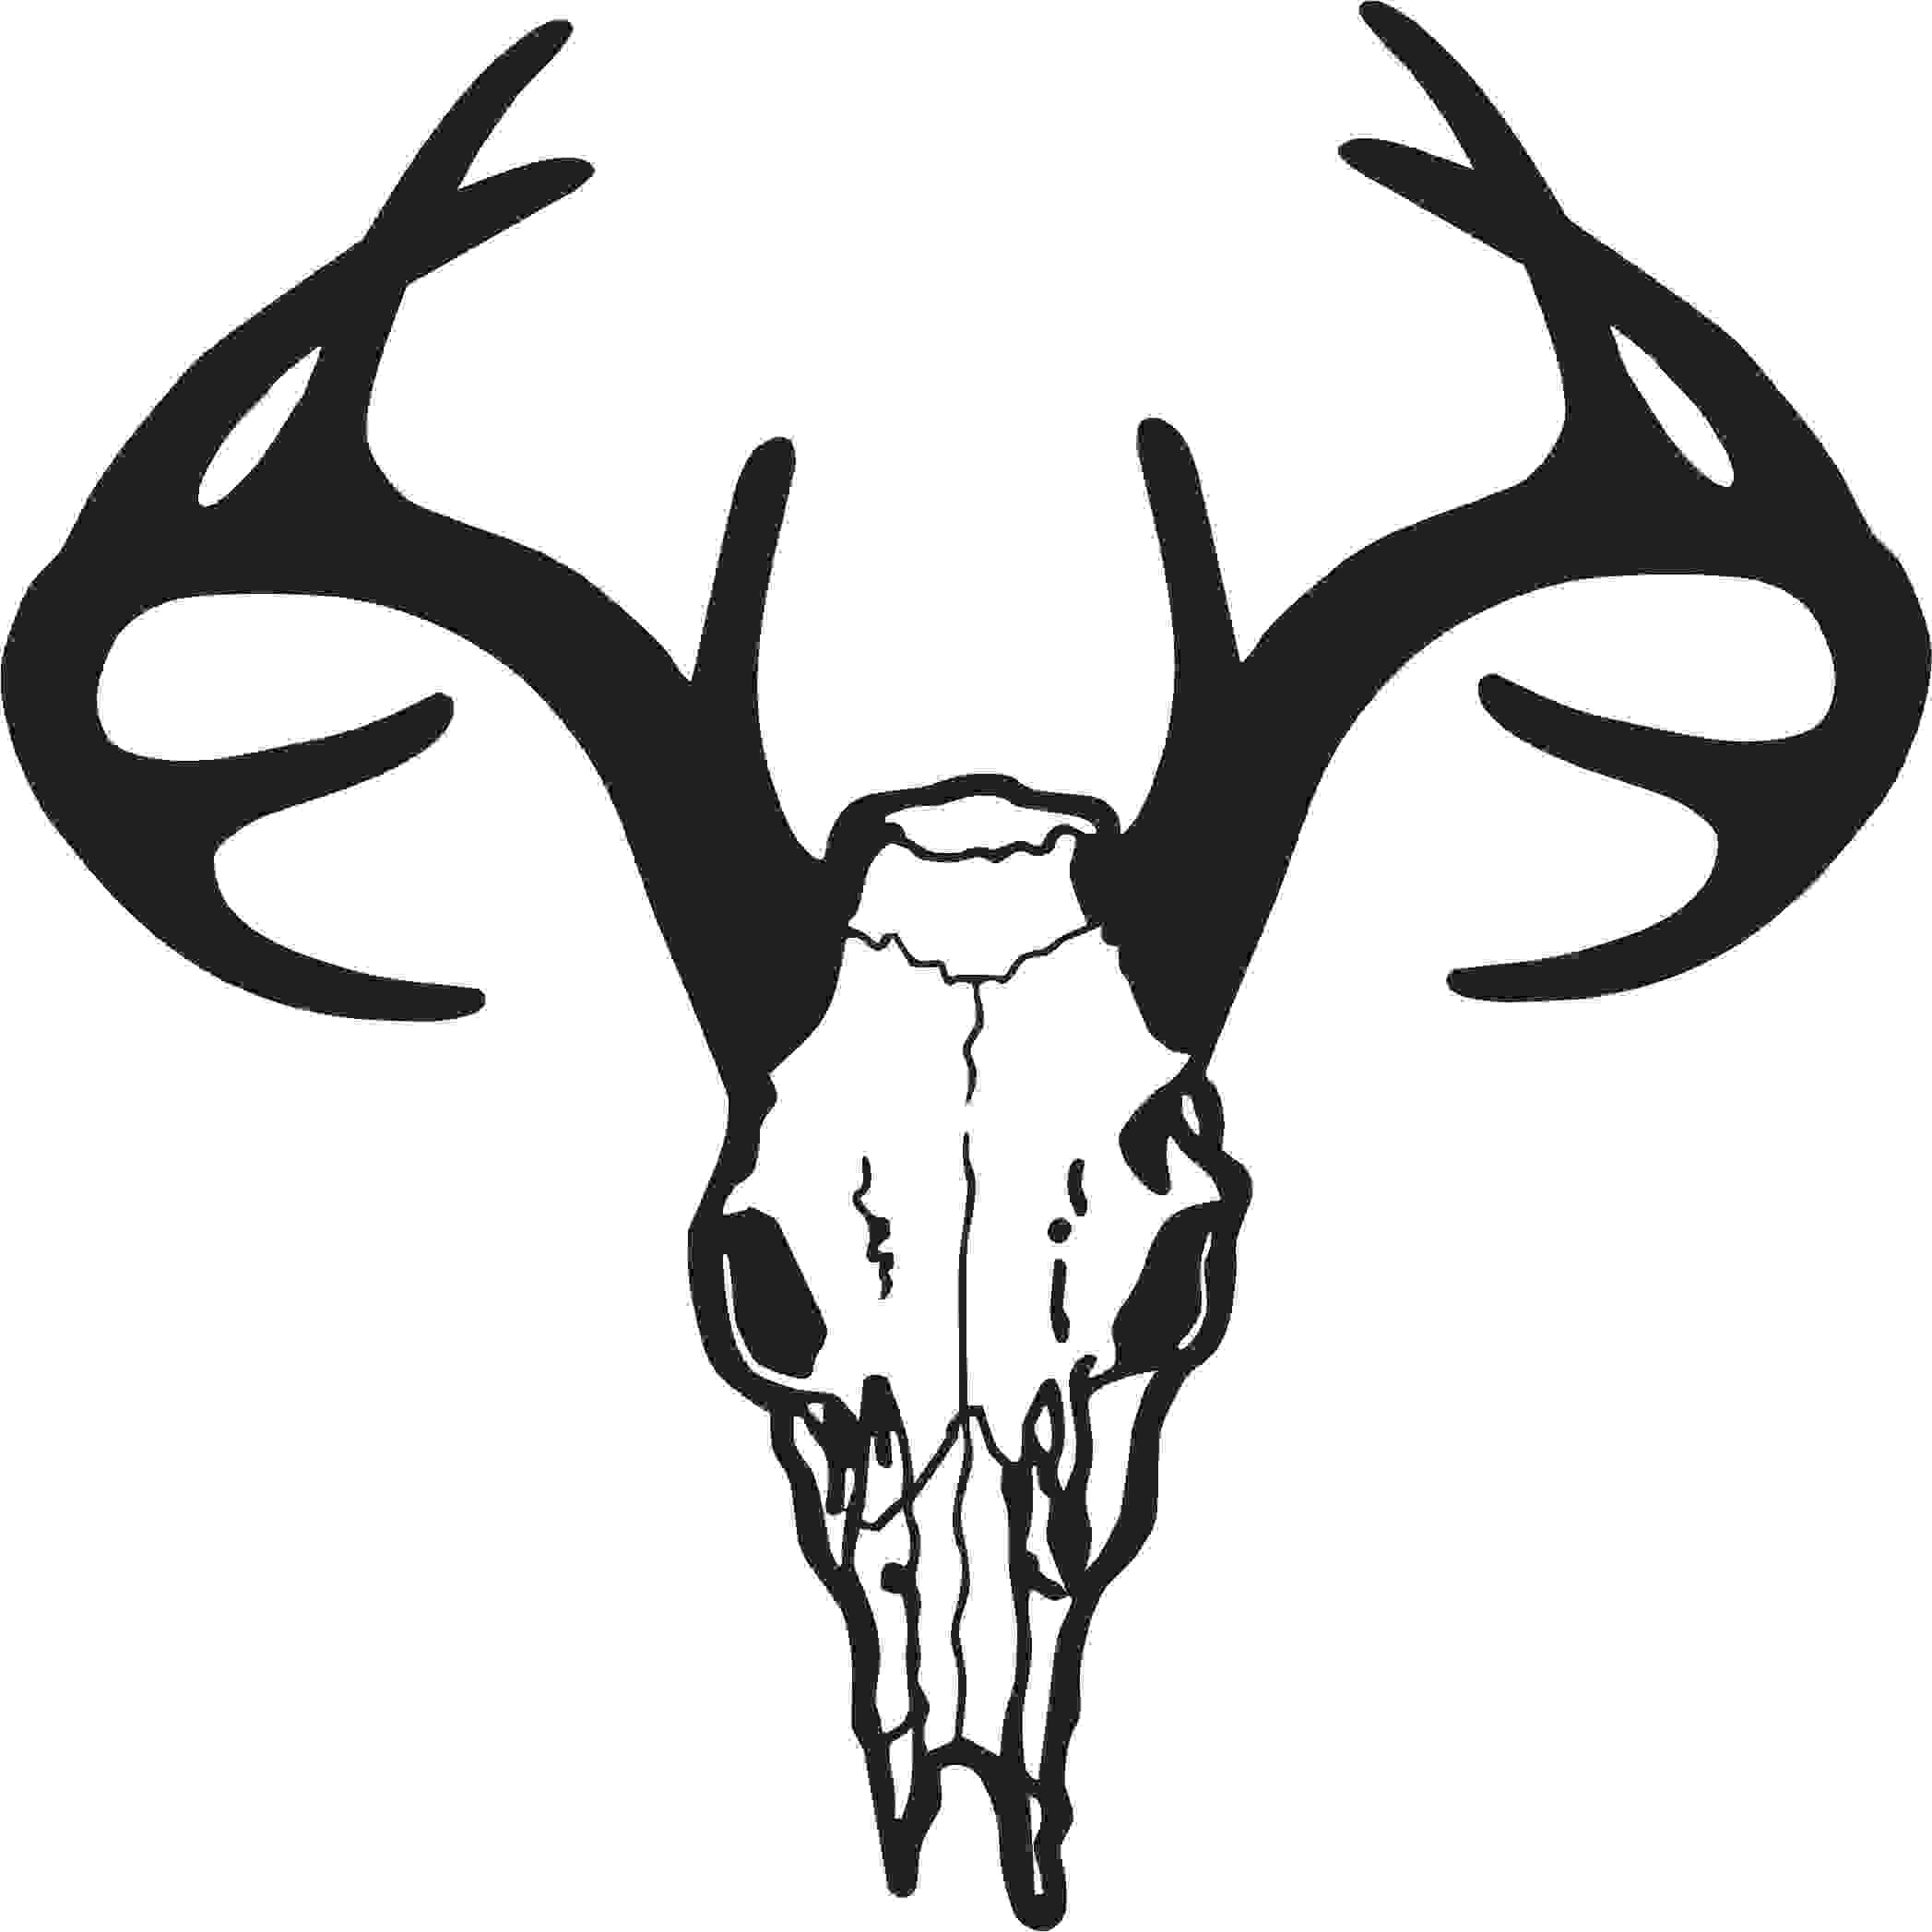 18 Deer Skull Silhouette Free Cliparts That You Can Download To You